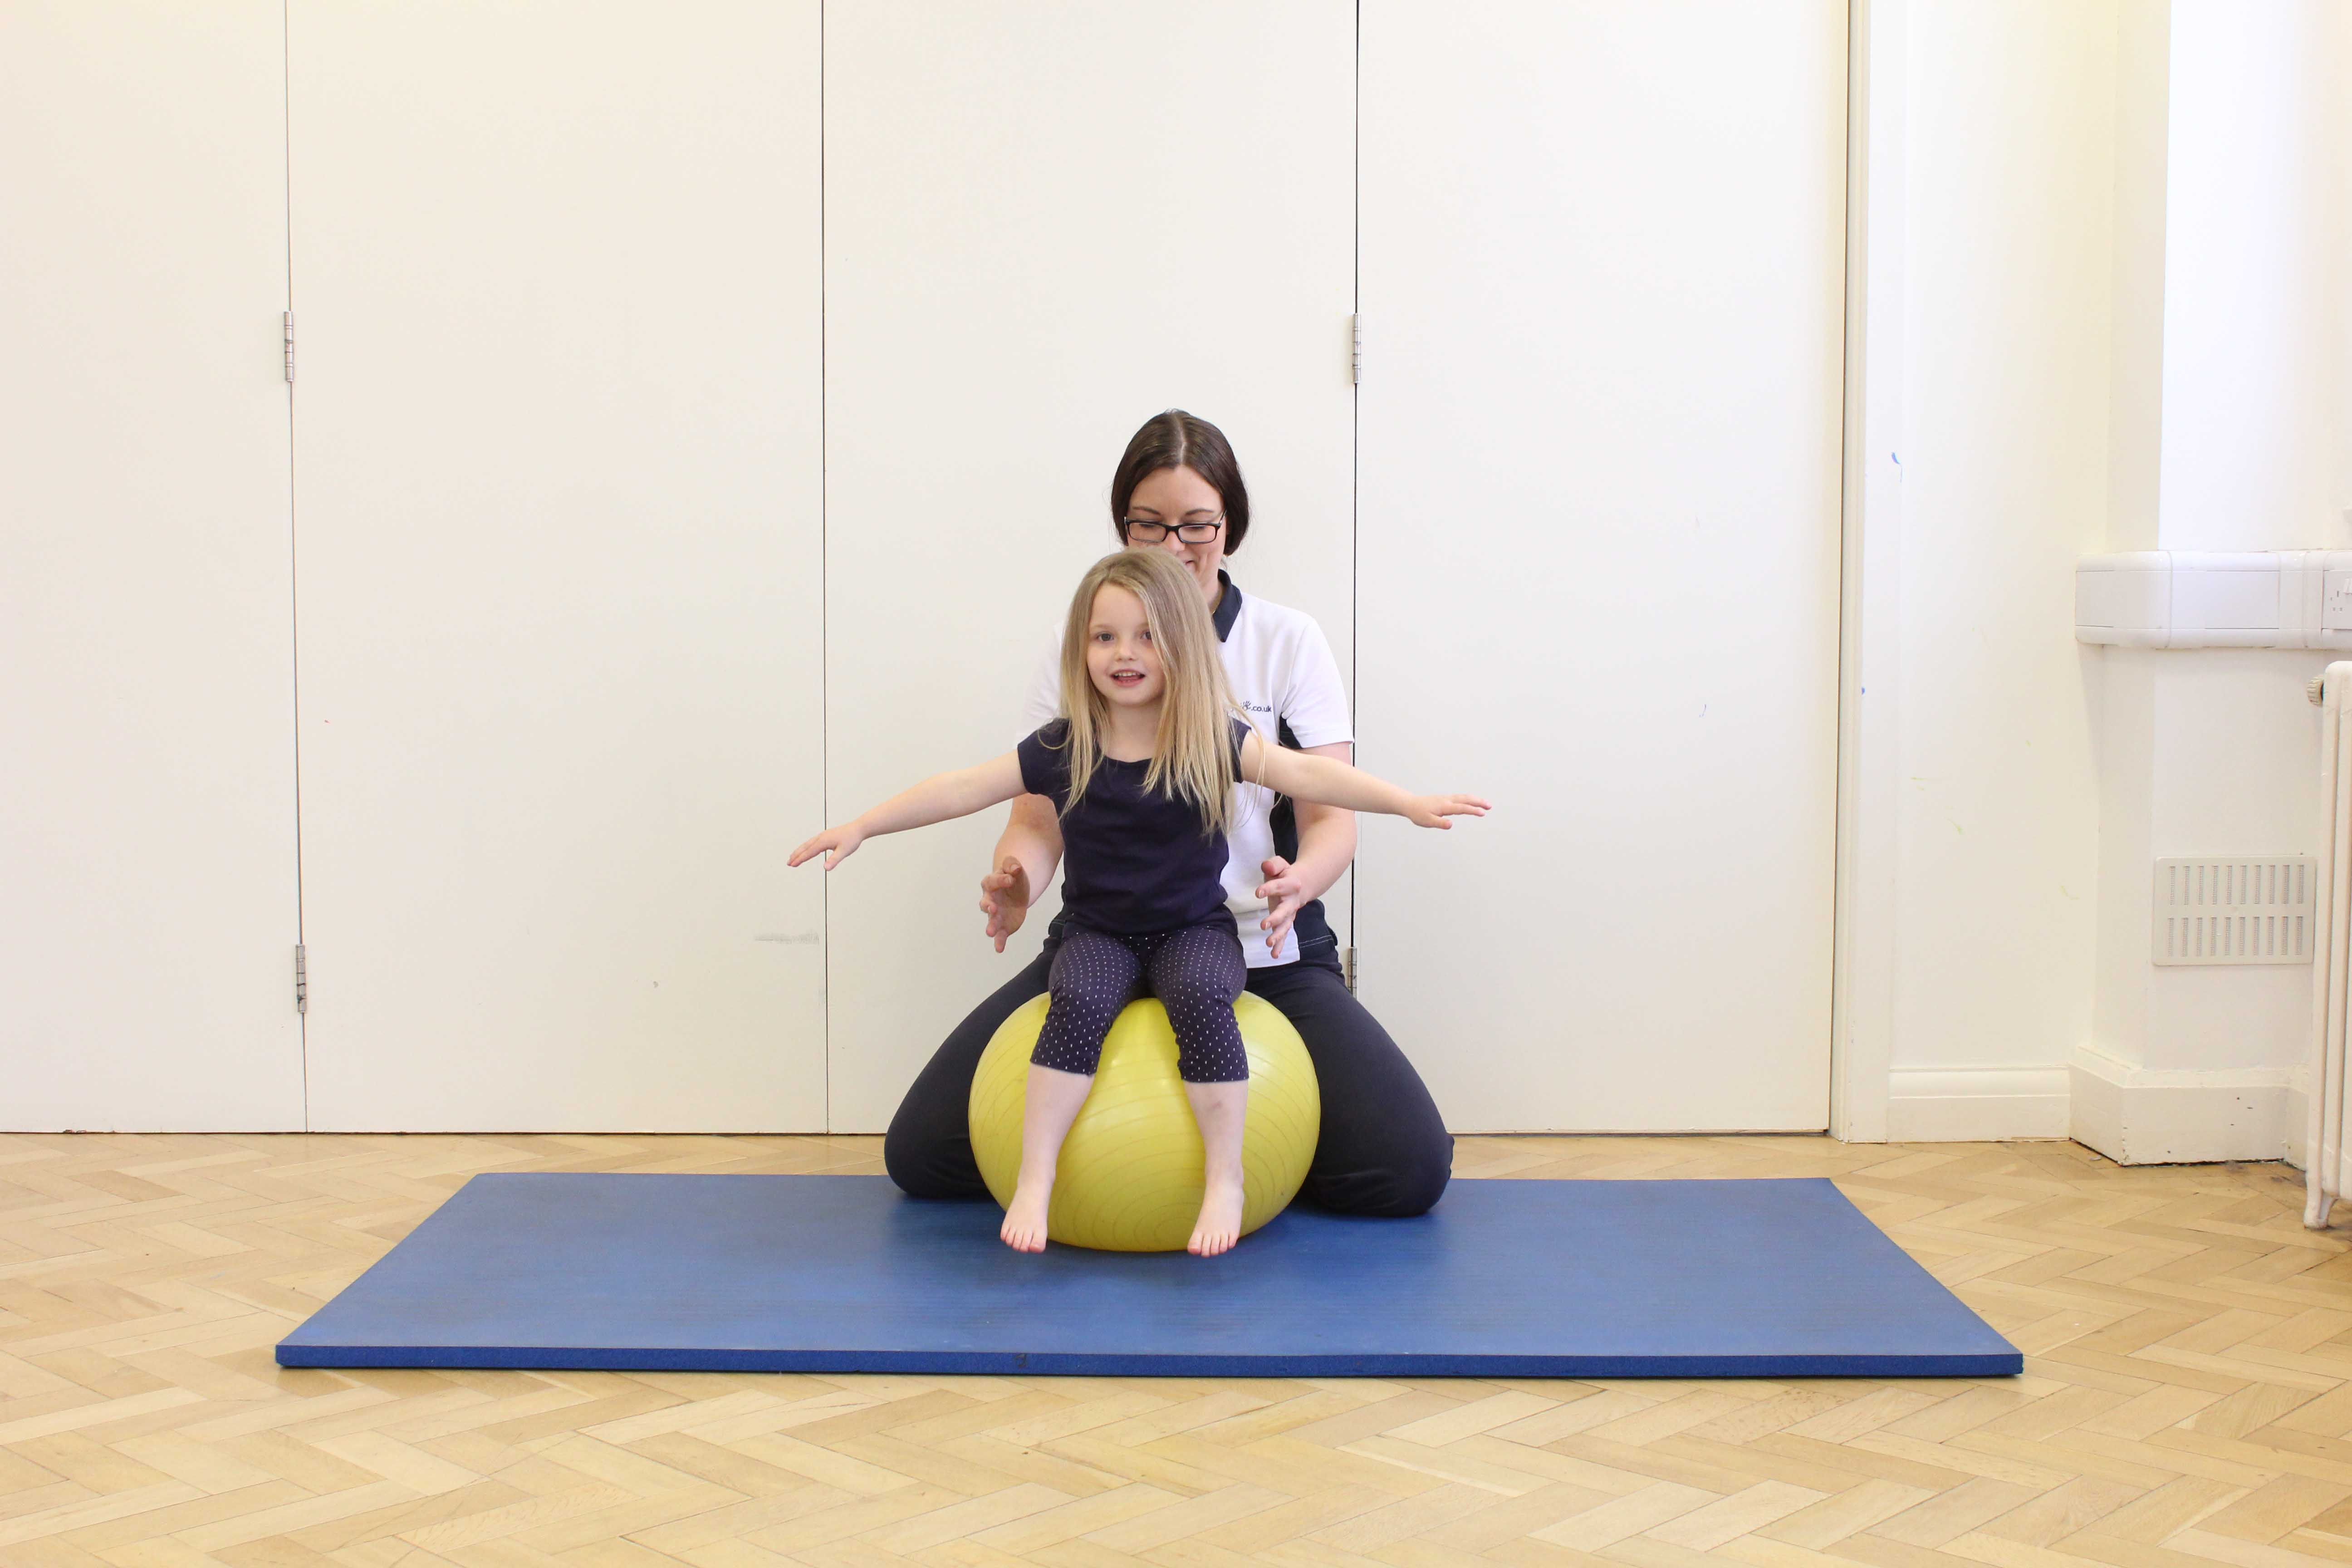 Trainig sitting balance and core stability on a gym ball under close supervision of a paediatric physiotherapist